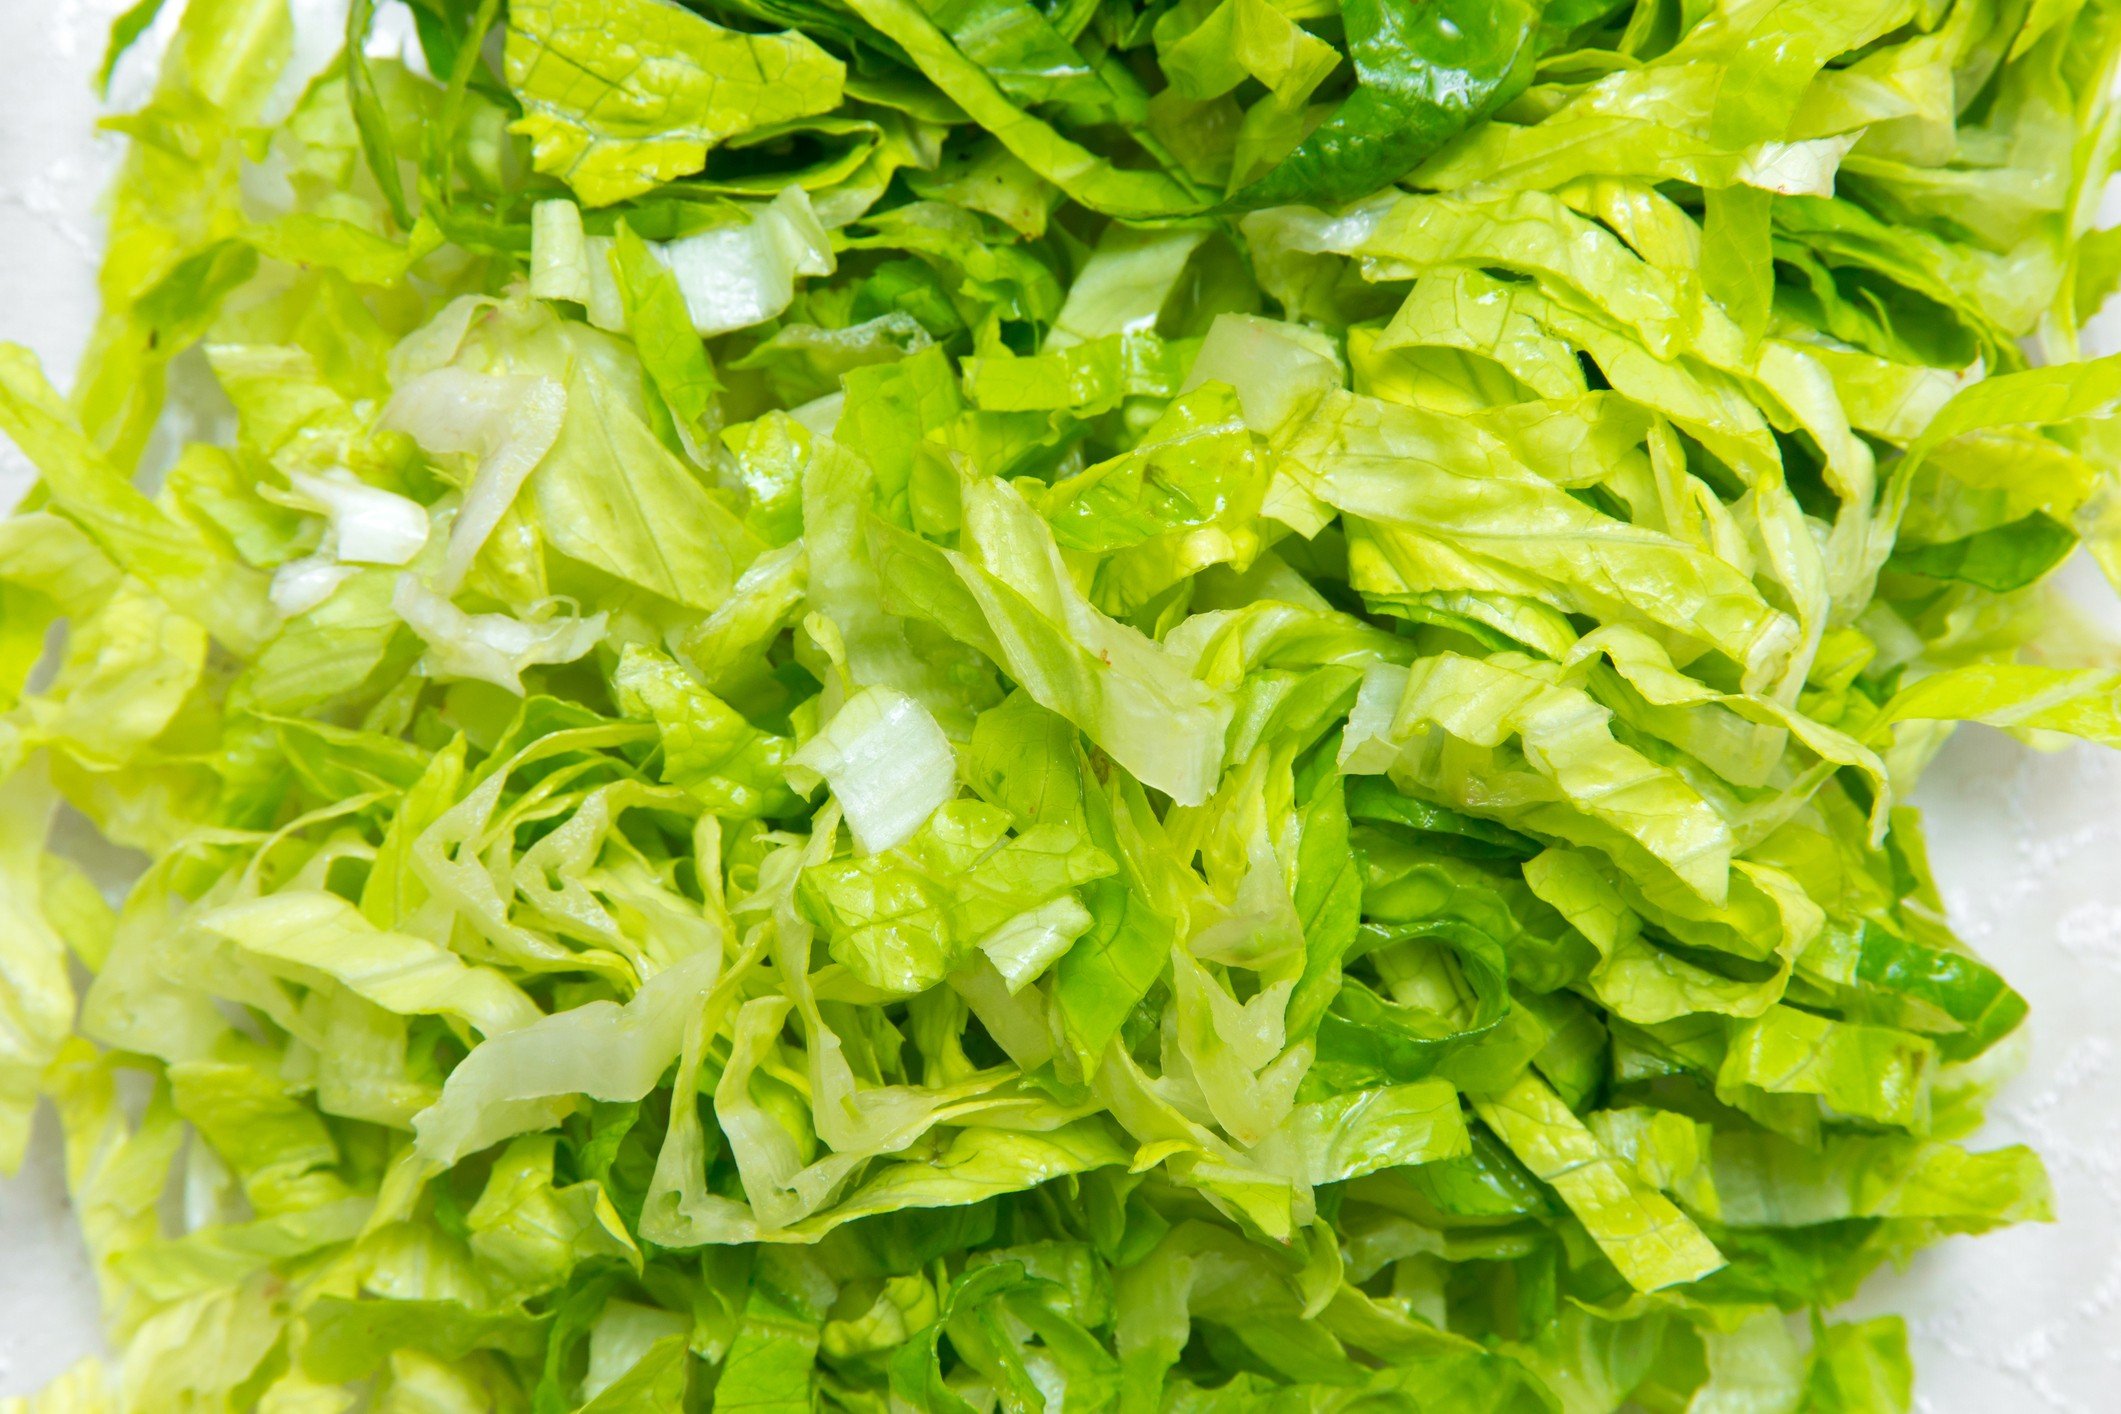 Shredded lettuce salad